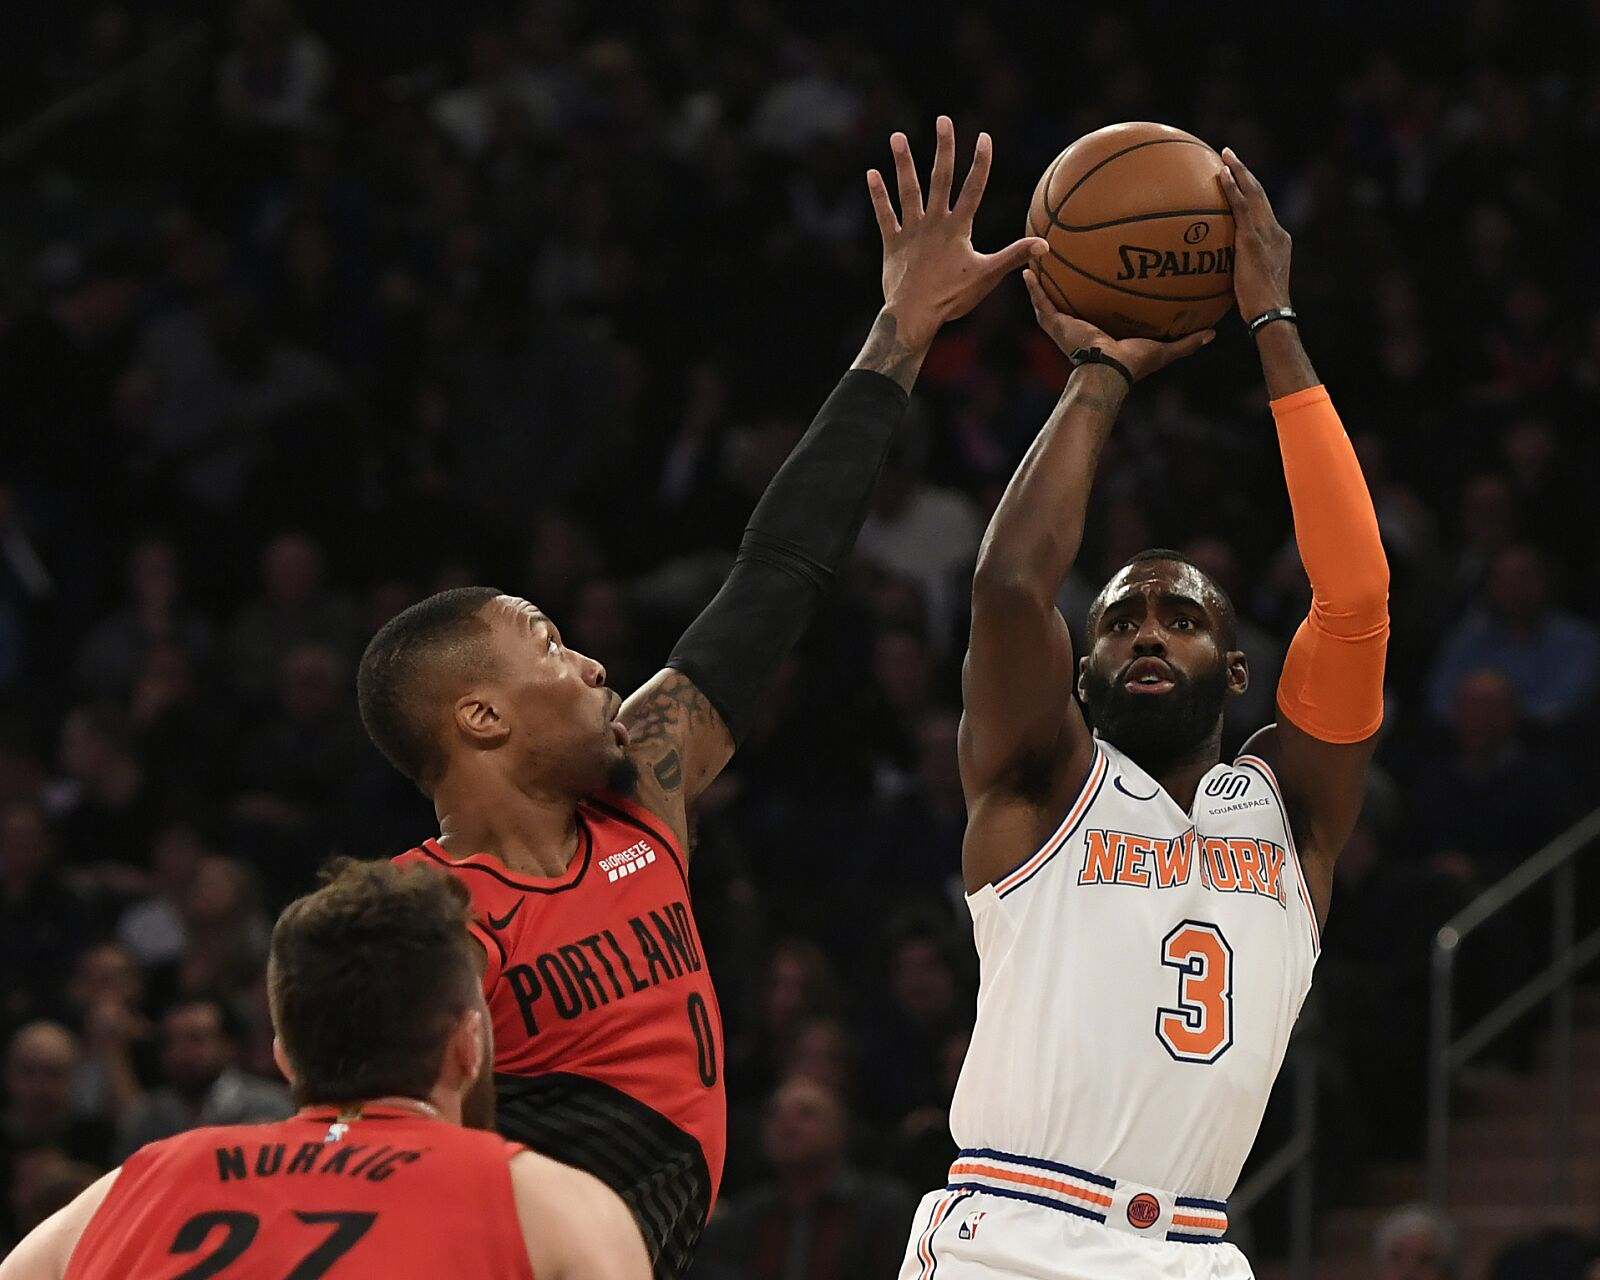 New York Knicks Who stepped up in tight game against Blazers